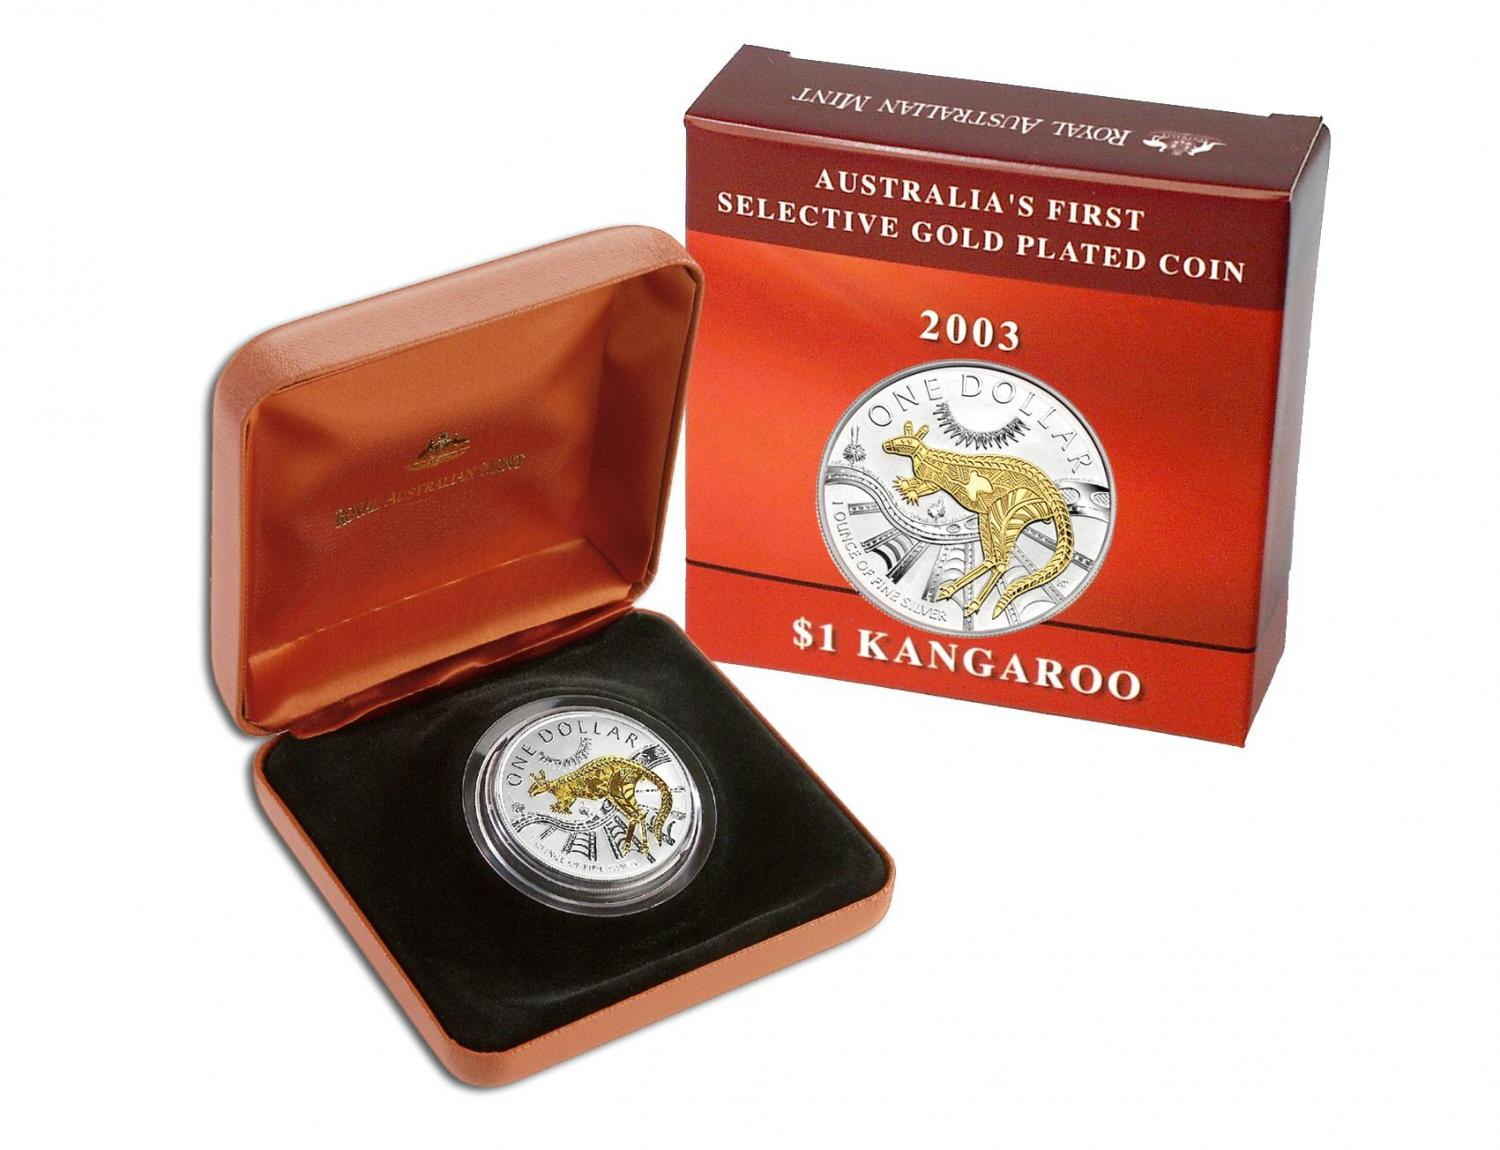 Thumbnail for 2003 Selectively Gold Plated 1oz Silver Kangaroo